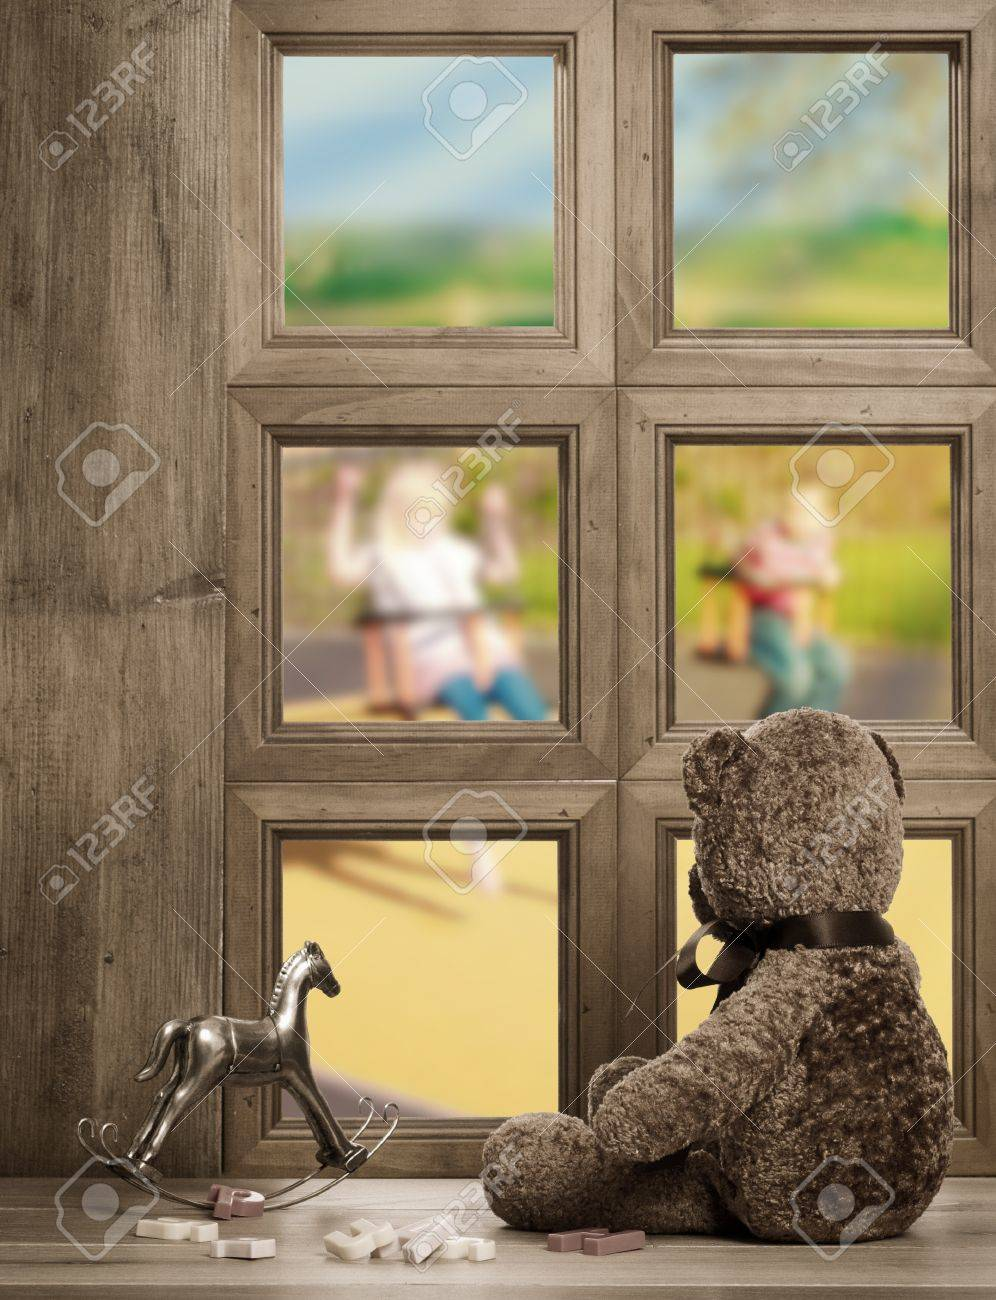 teddy bear watches from the nursery window waiting for the